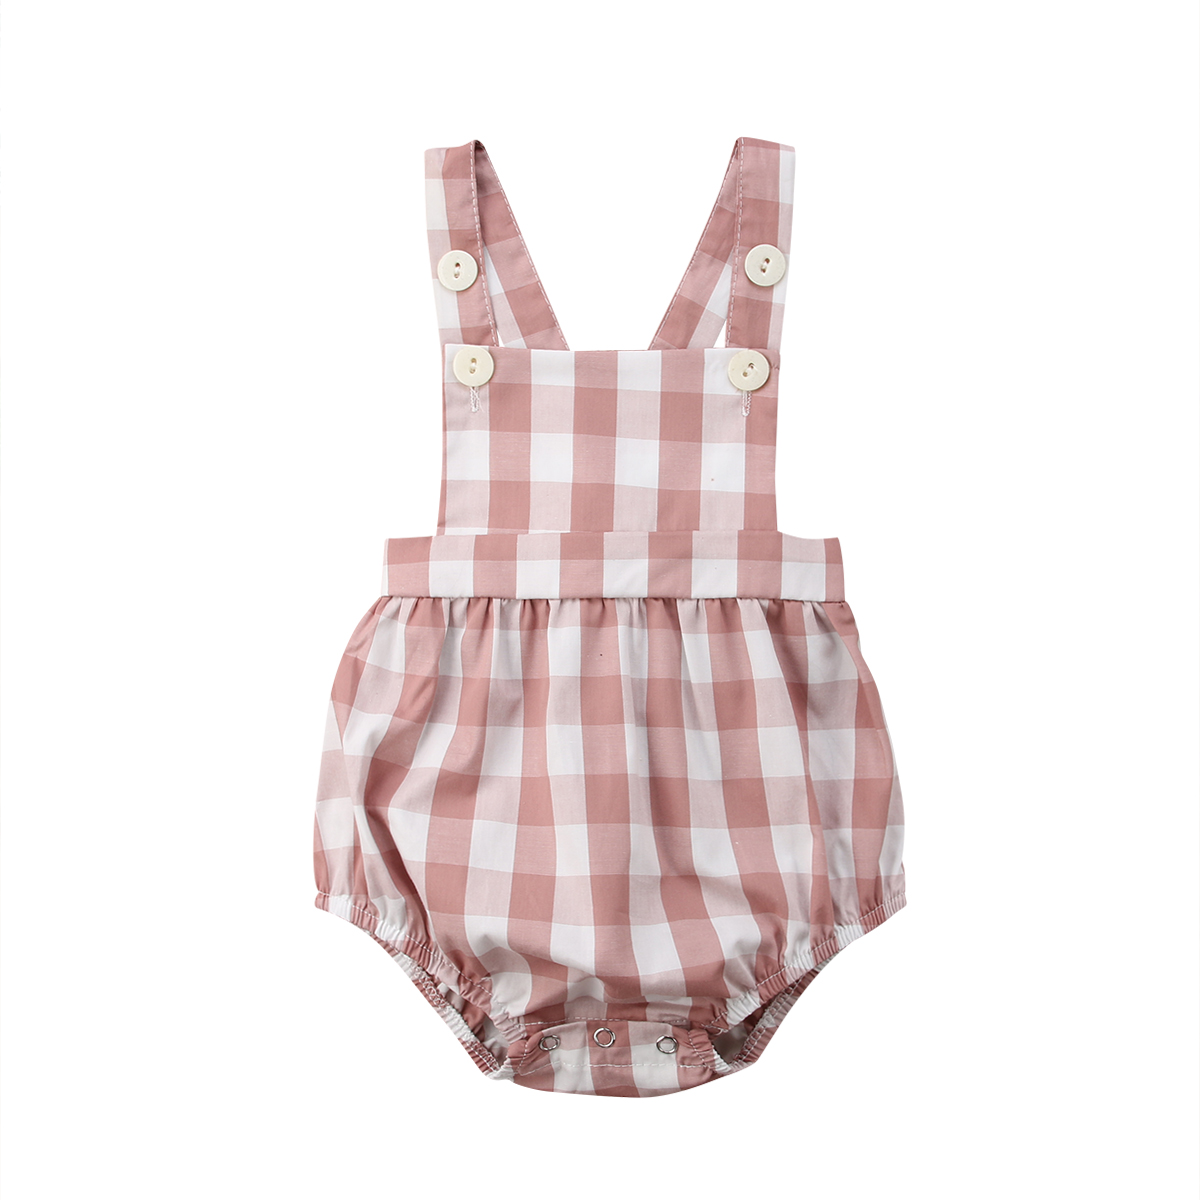 0-18M Toddler Baby Girls Sleeveless Plaid   Romper   Cotton Infant Newborn Girls Jumpsuit Overalls Baby Girls Clothing Summer